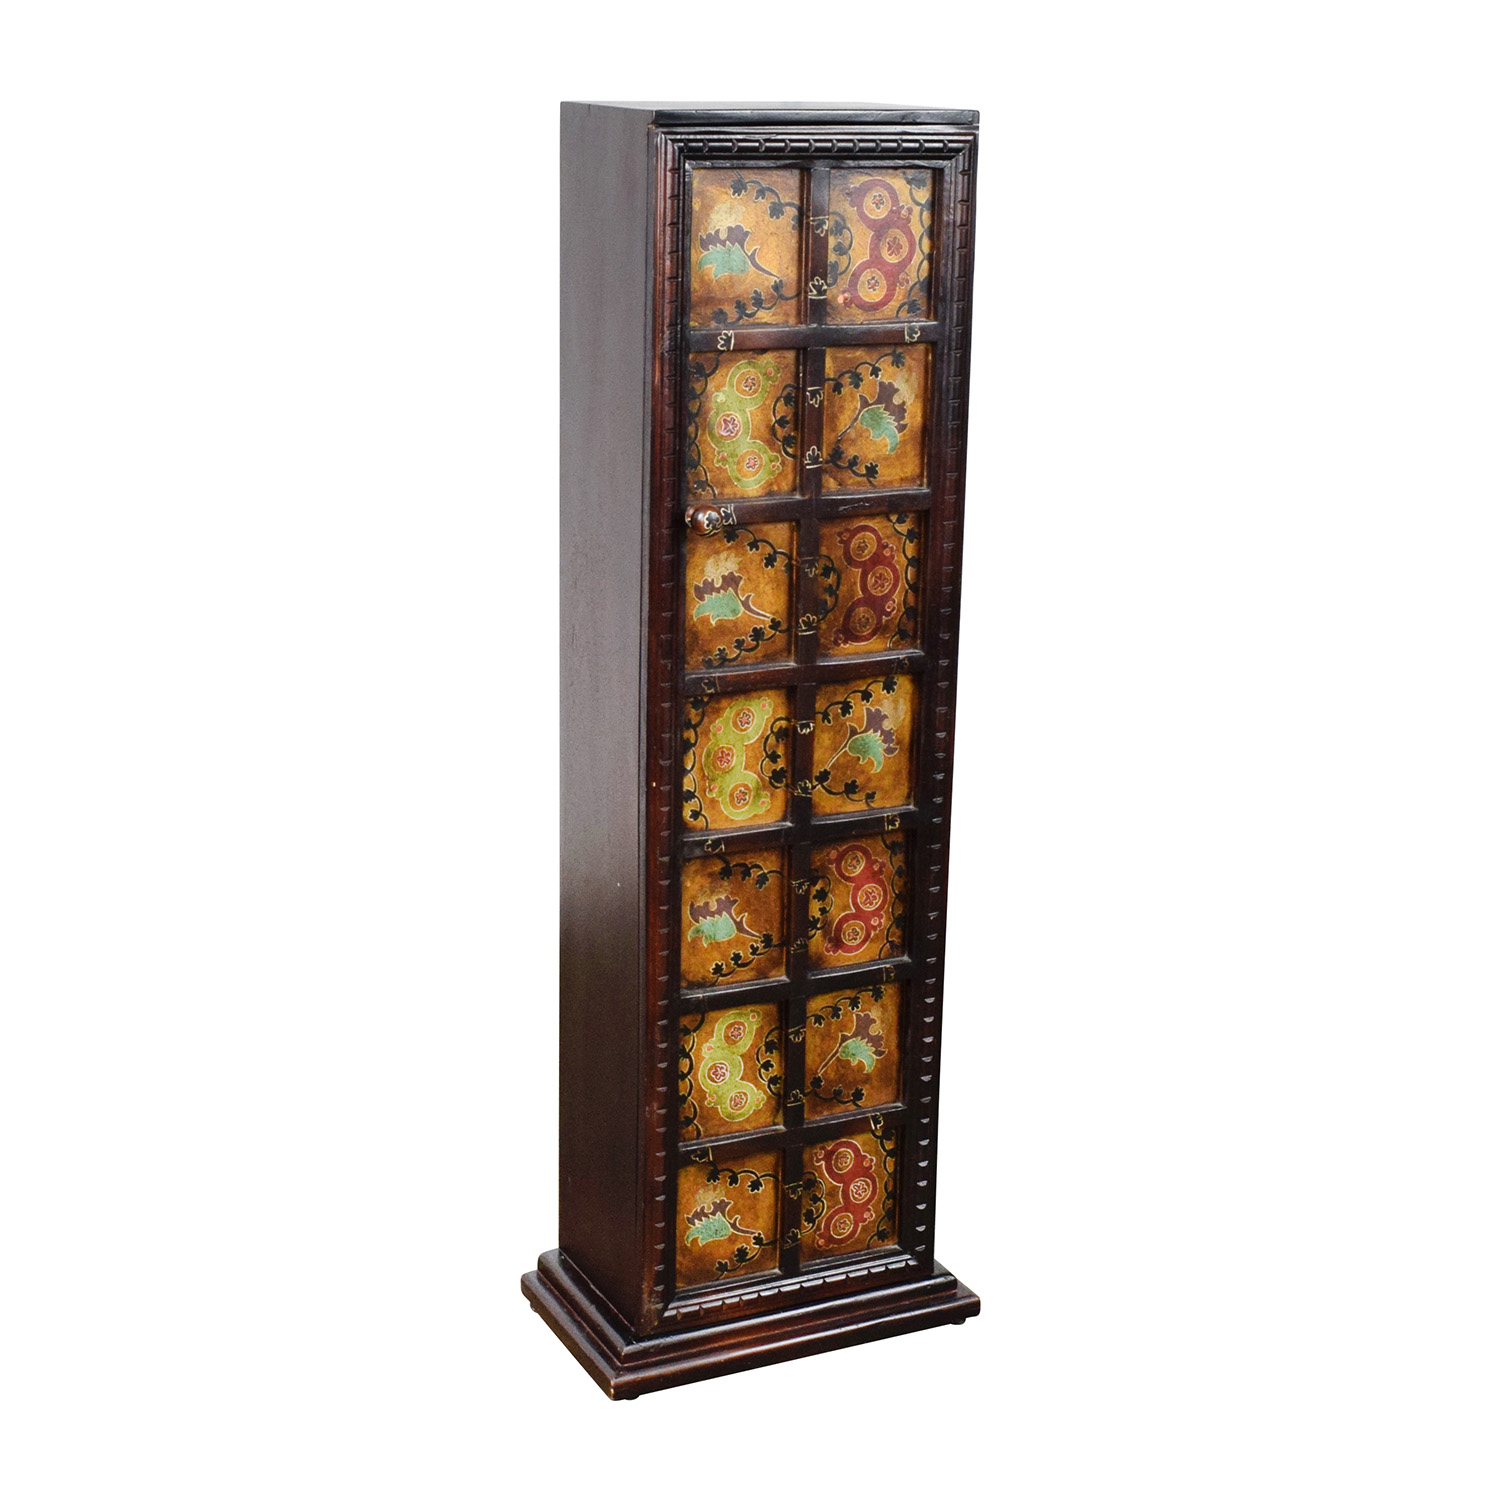 48 Off Pier 1 Imports Pier 1 Imports Kangra Dvd Cabinet